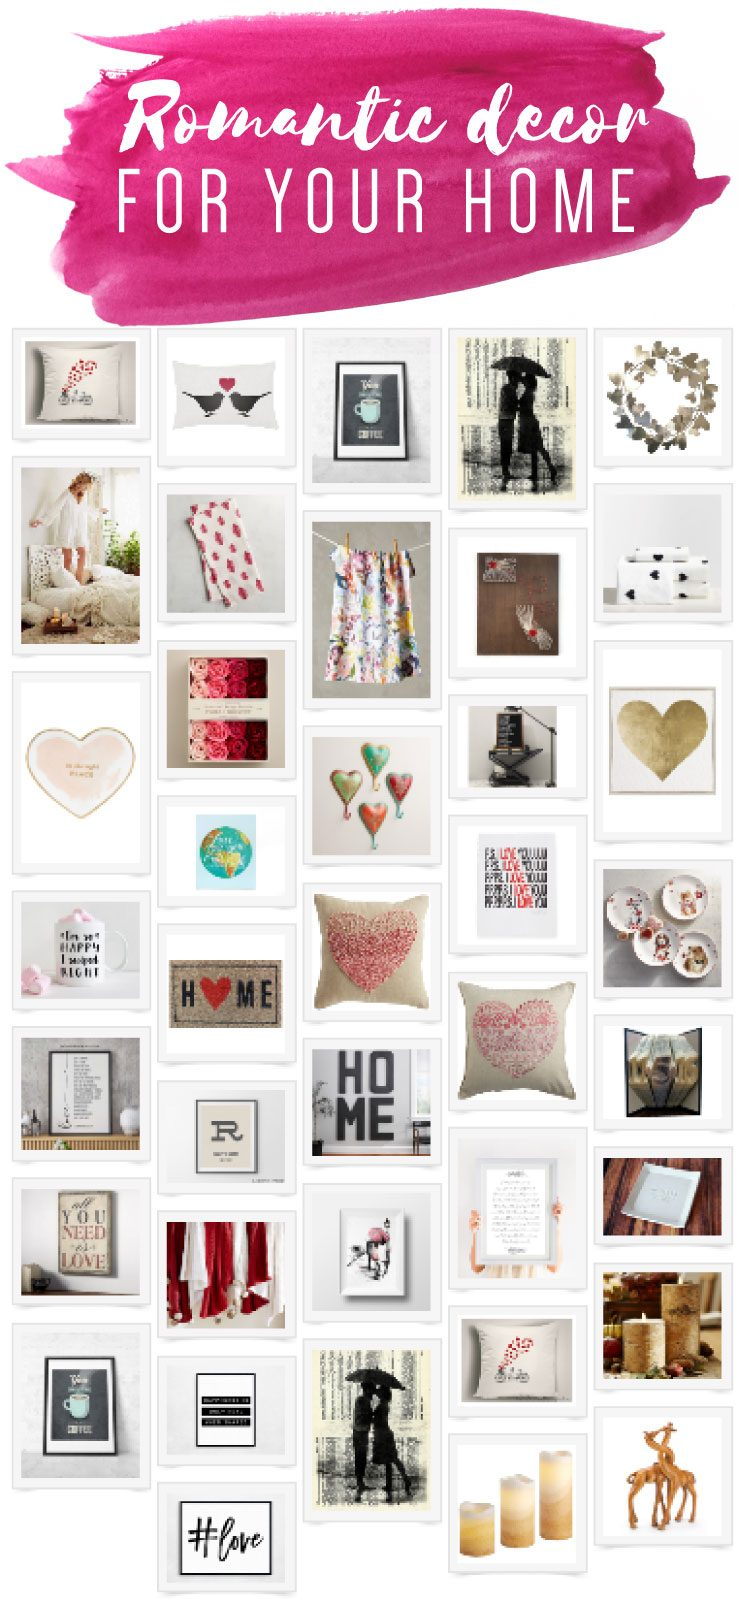 I ADORE these romantic room decor ideas! Would make great gifts and are the perfect way to add some coziness and touches of love to your home. You can add romantic room decor to your home without going overboard. These tasteful romantic room decor ideas are classy and beautiful.